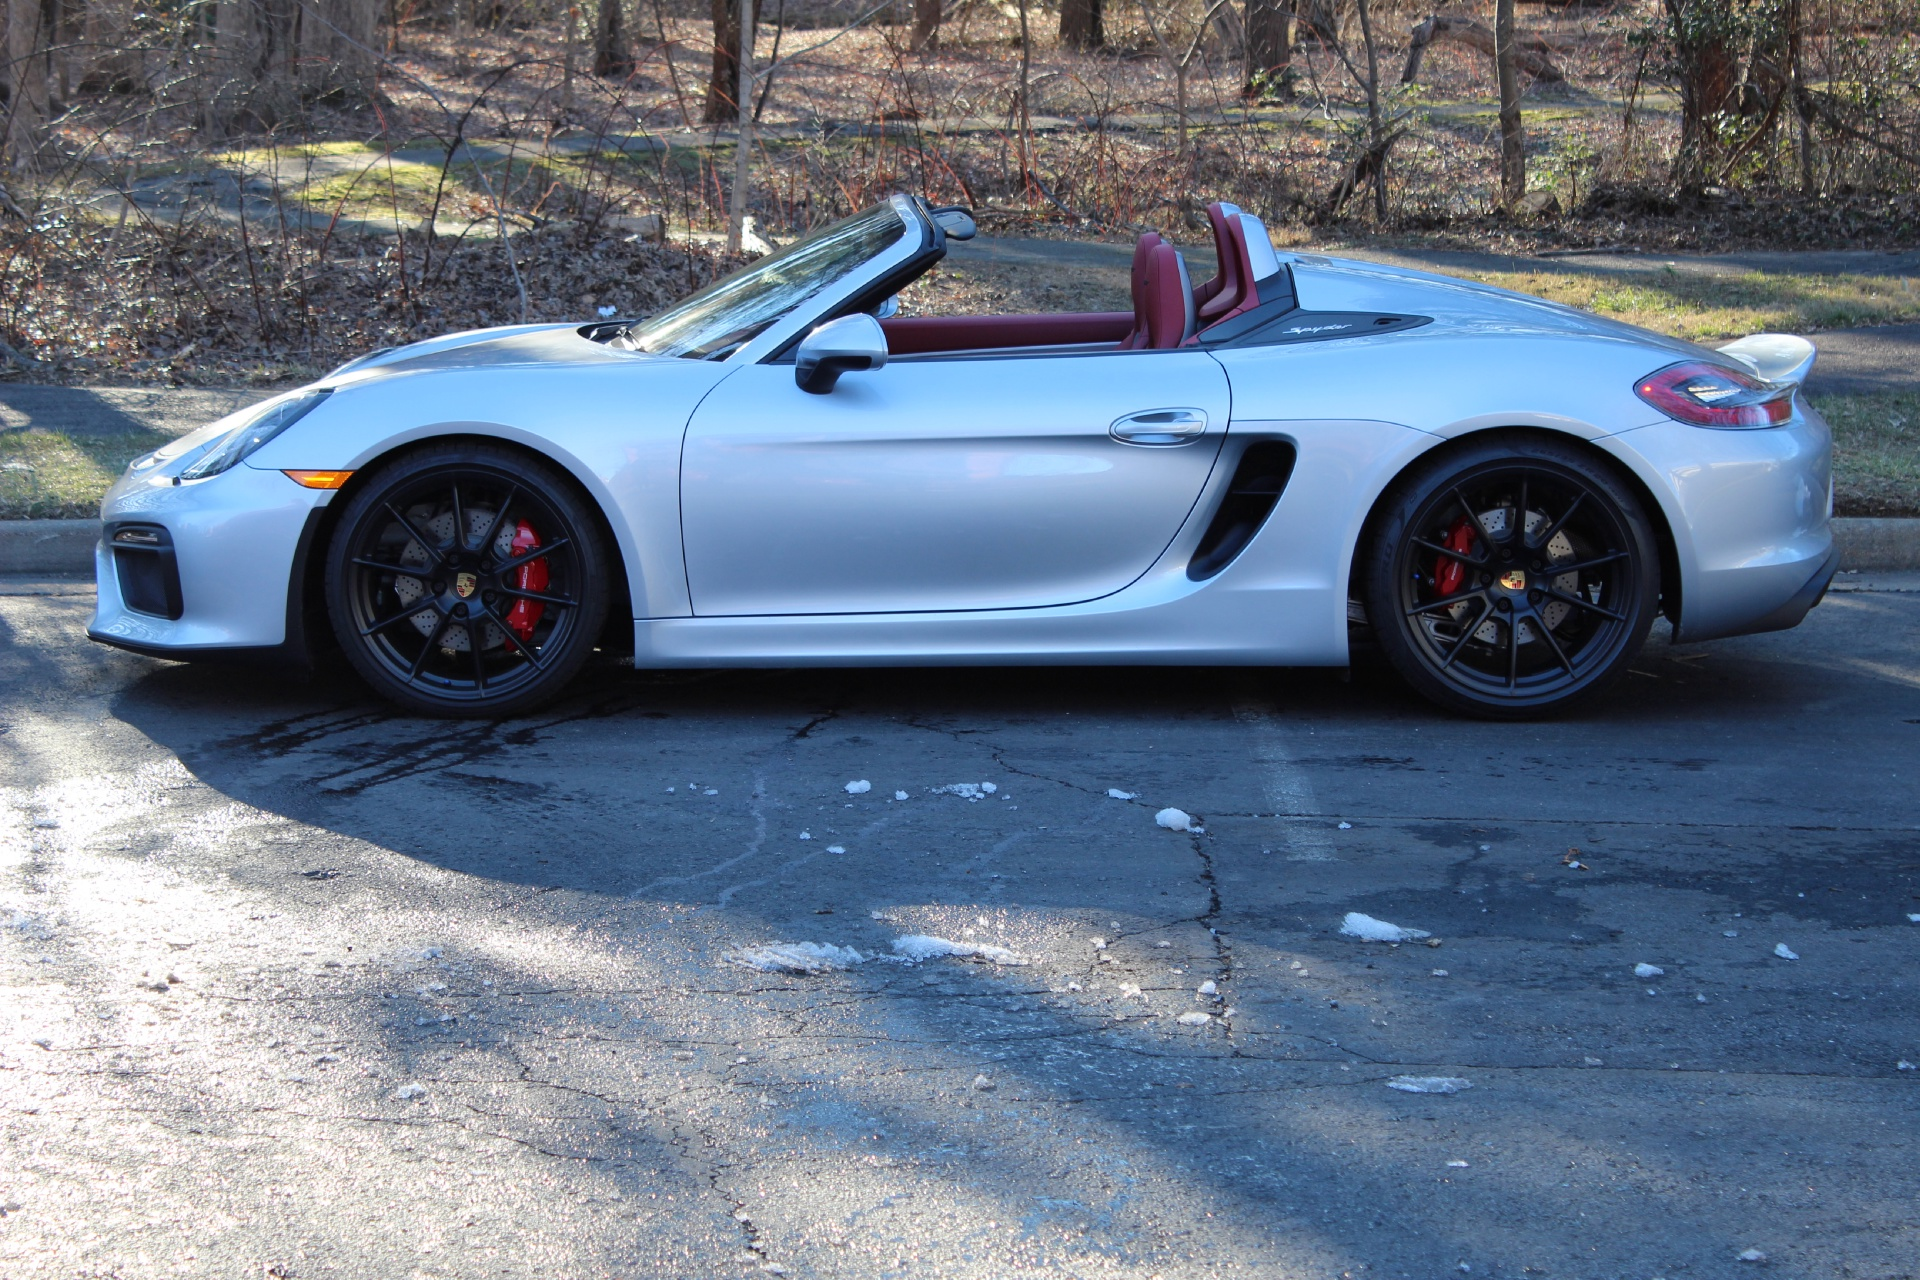 2016 porsche boxster spyder stock p152426 for sale near vienna va va porsche dealer for. Black Bedroom Furniture Sets. Home Design Ideas